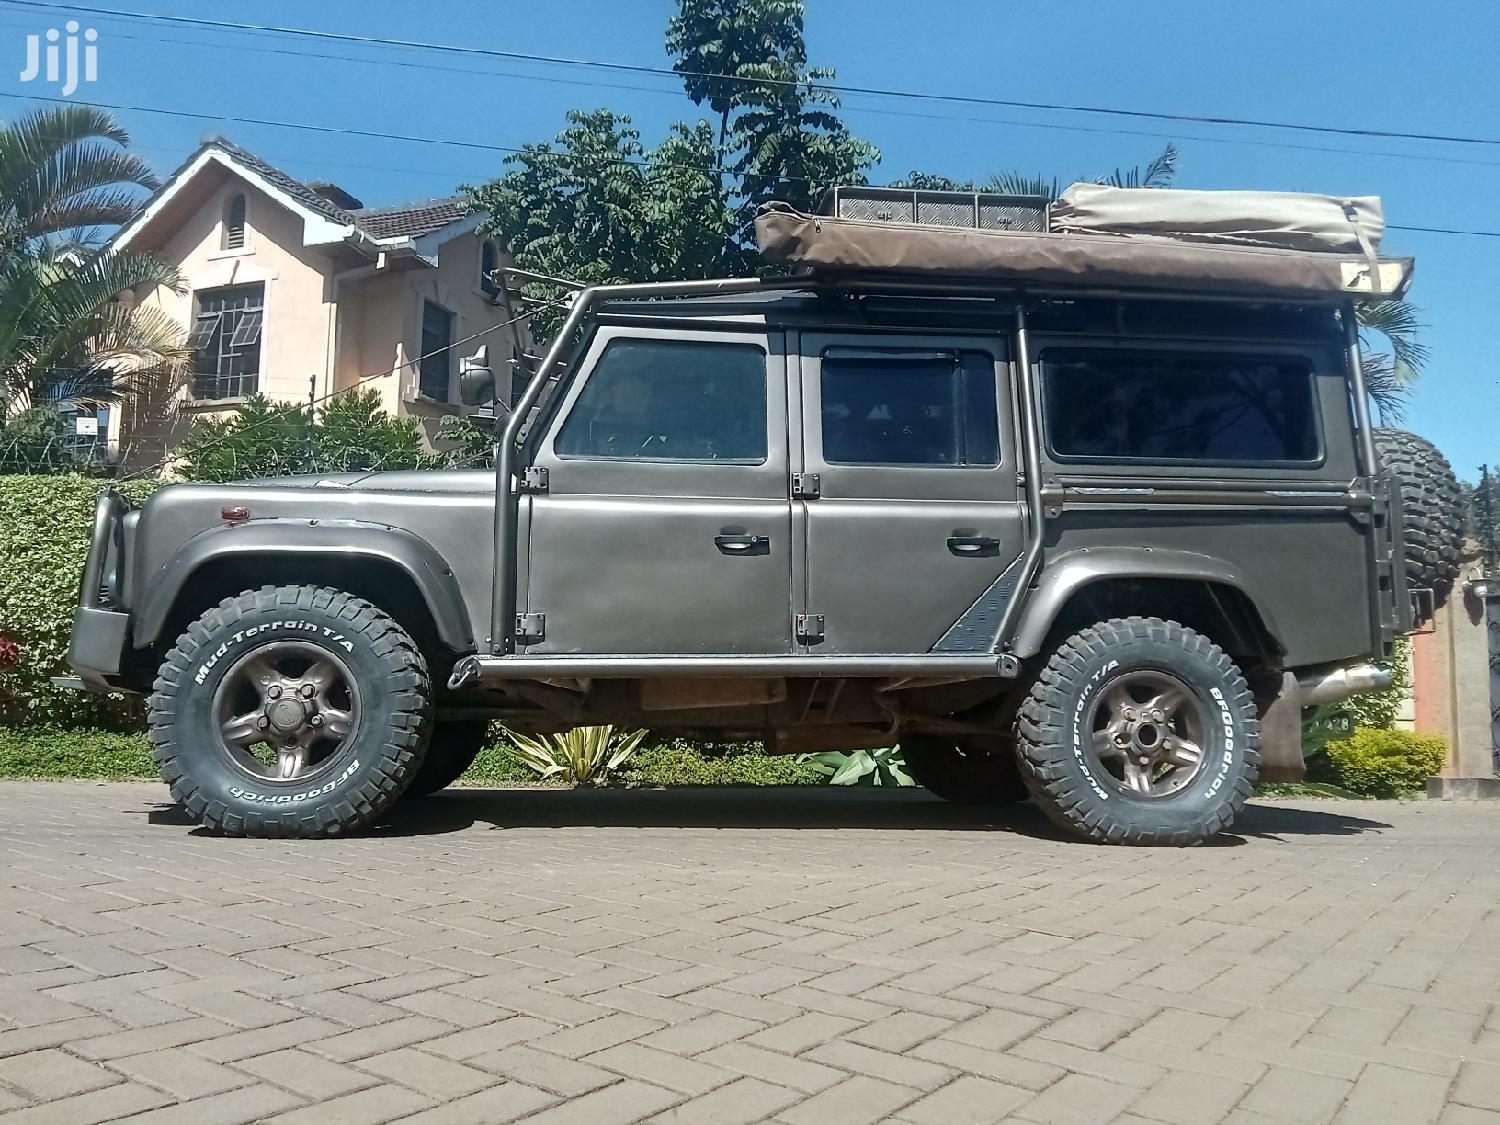 Archive: Land Rover Defender 1990 Brown